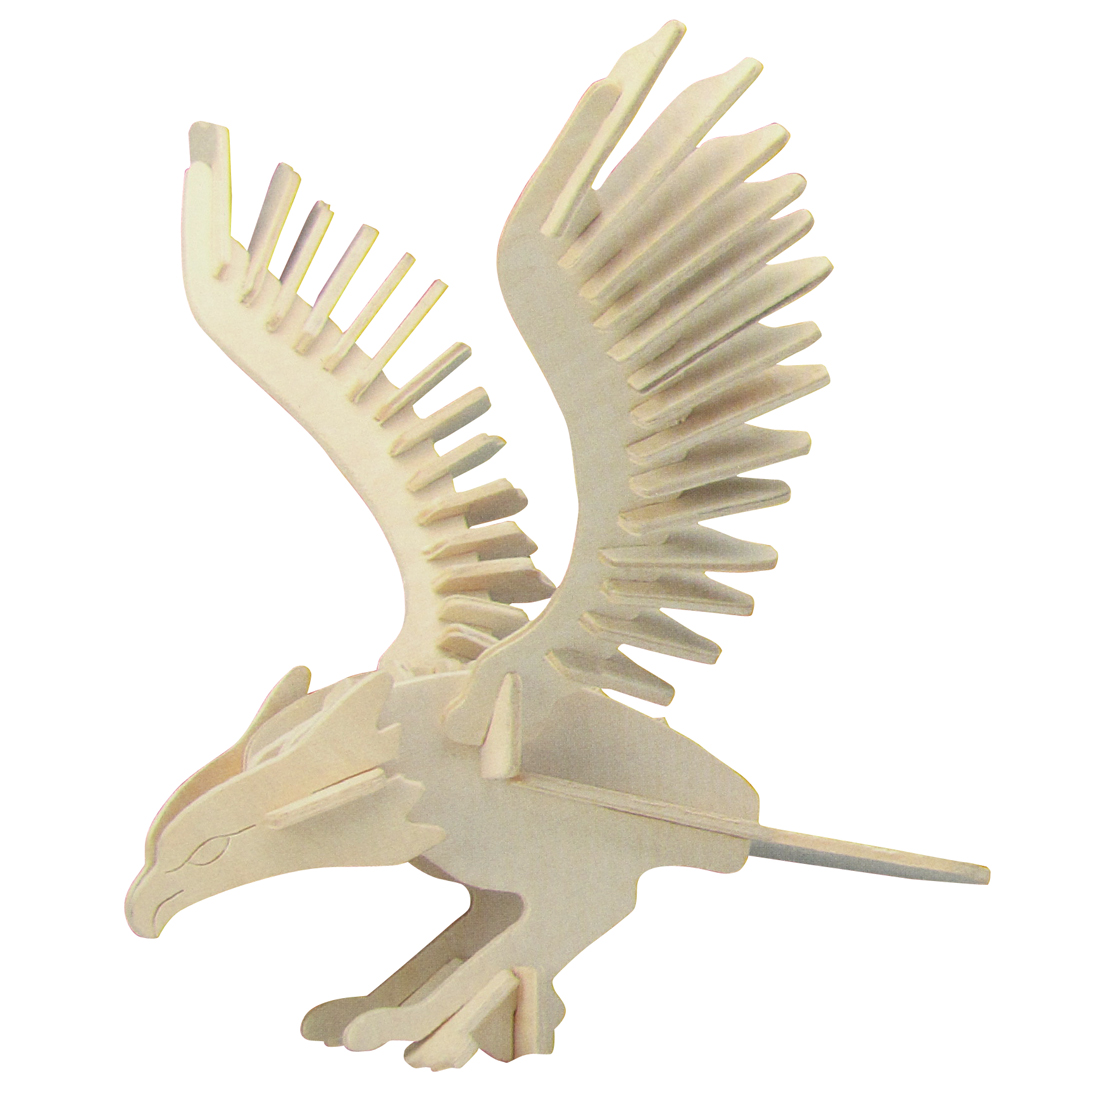 DIY Wooden Eagle 3D Educational Puzzle Toy Woodcraft Construction Kit